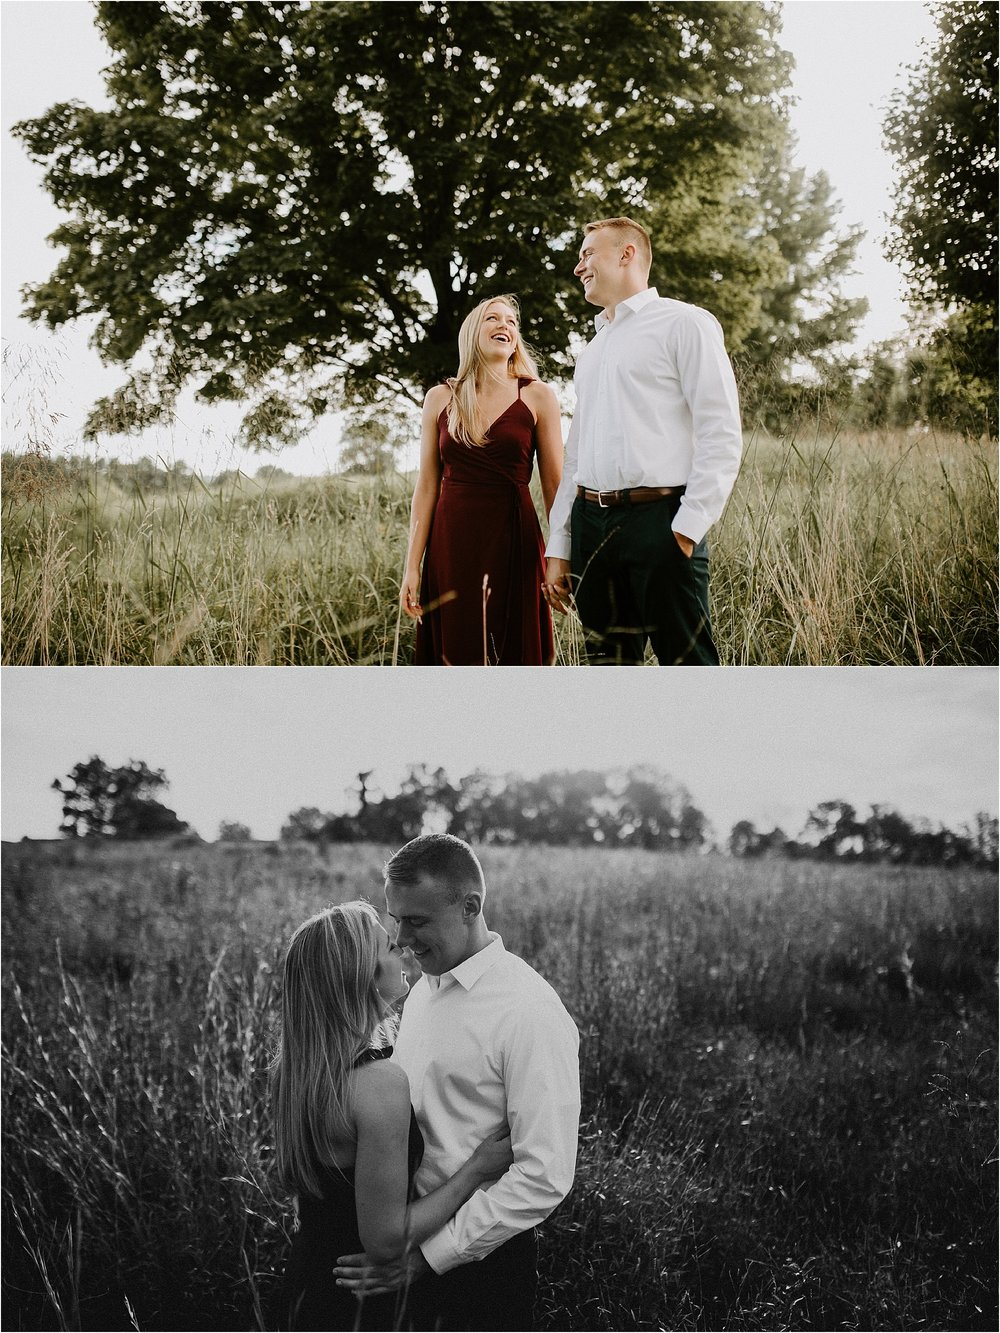 Sarah_Brookhart_Valley_Forge_Engagement_Photographer_0001.jpg